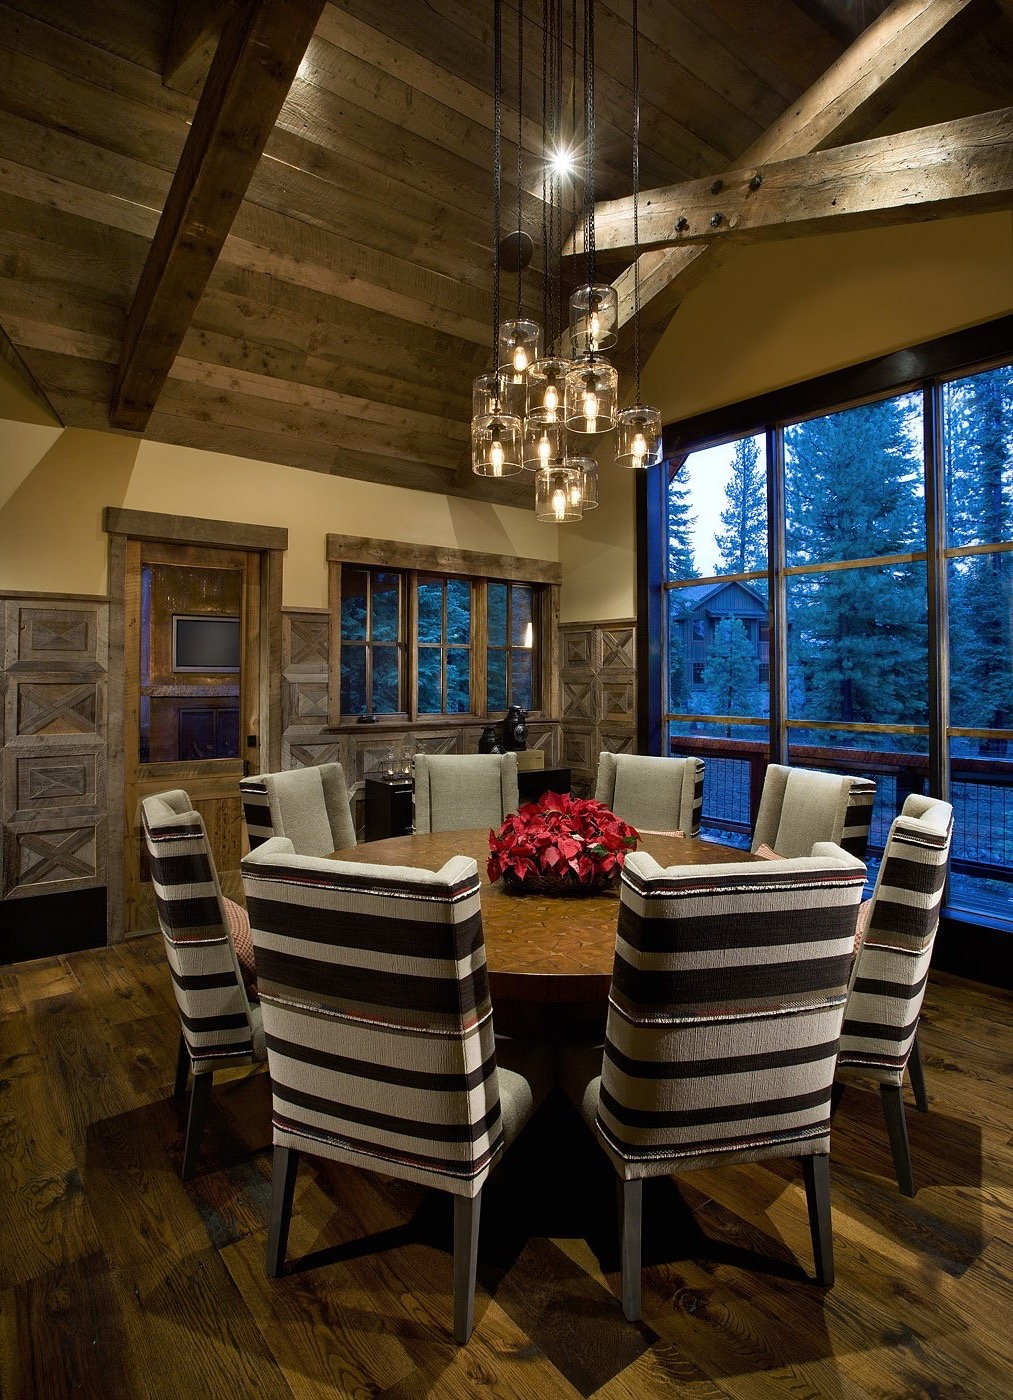 Rustic Dining Room Boasts Stylish Striped Dining Chairs (Image 22 of 36)